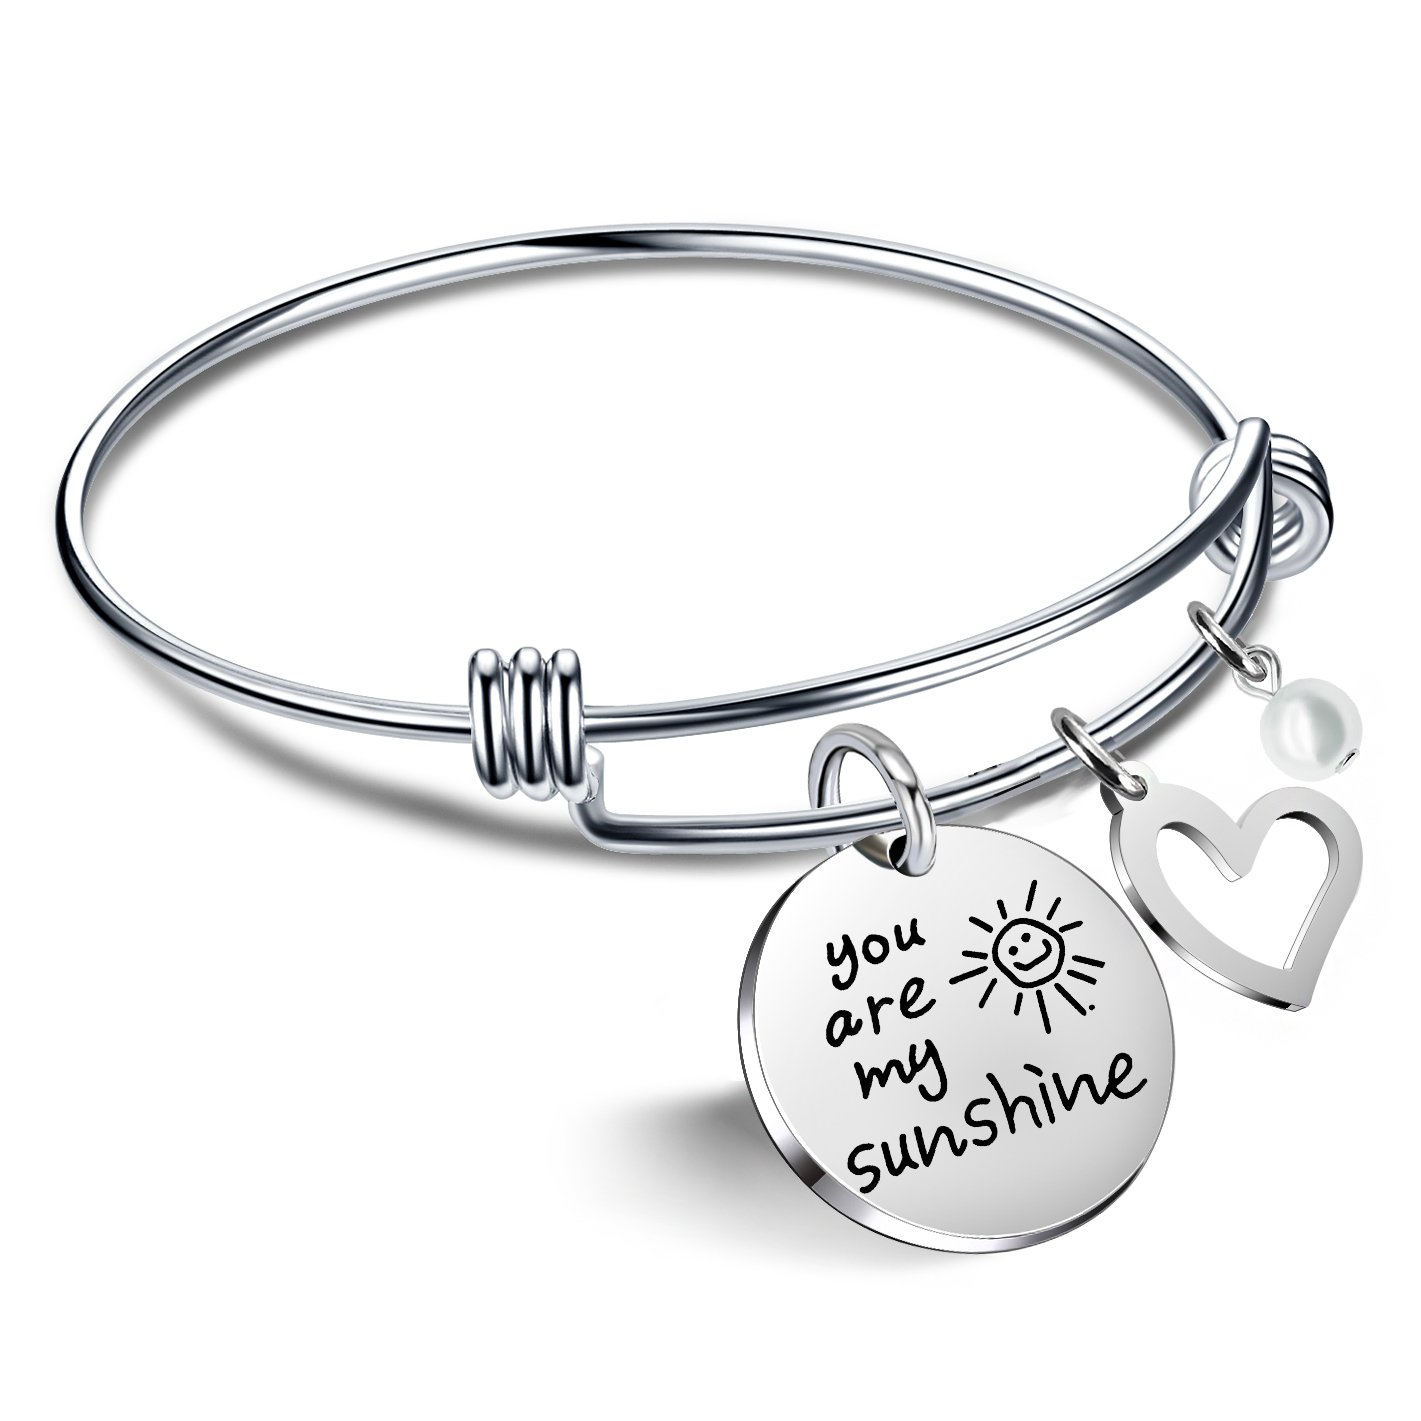 Bracelets for Women Valentine Gifts for Best Friends Family You are my sunshine Pearl Bangle lauhonmin AB093-CA